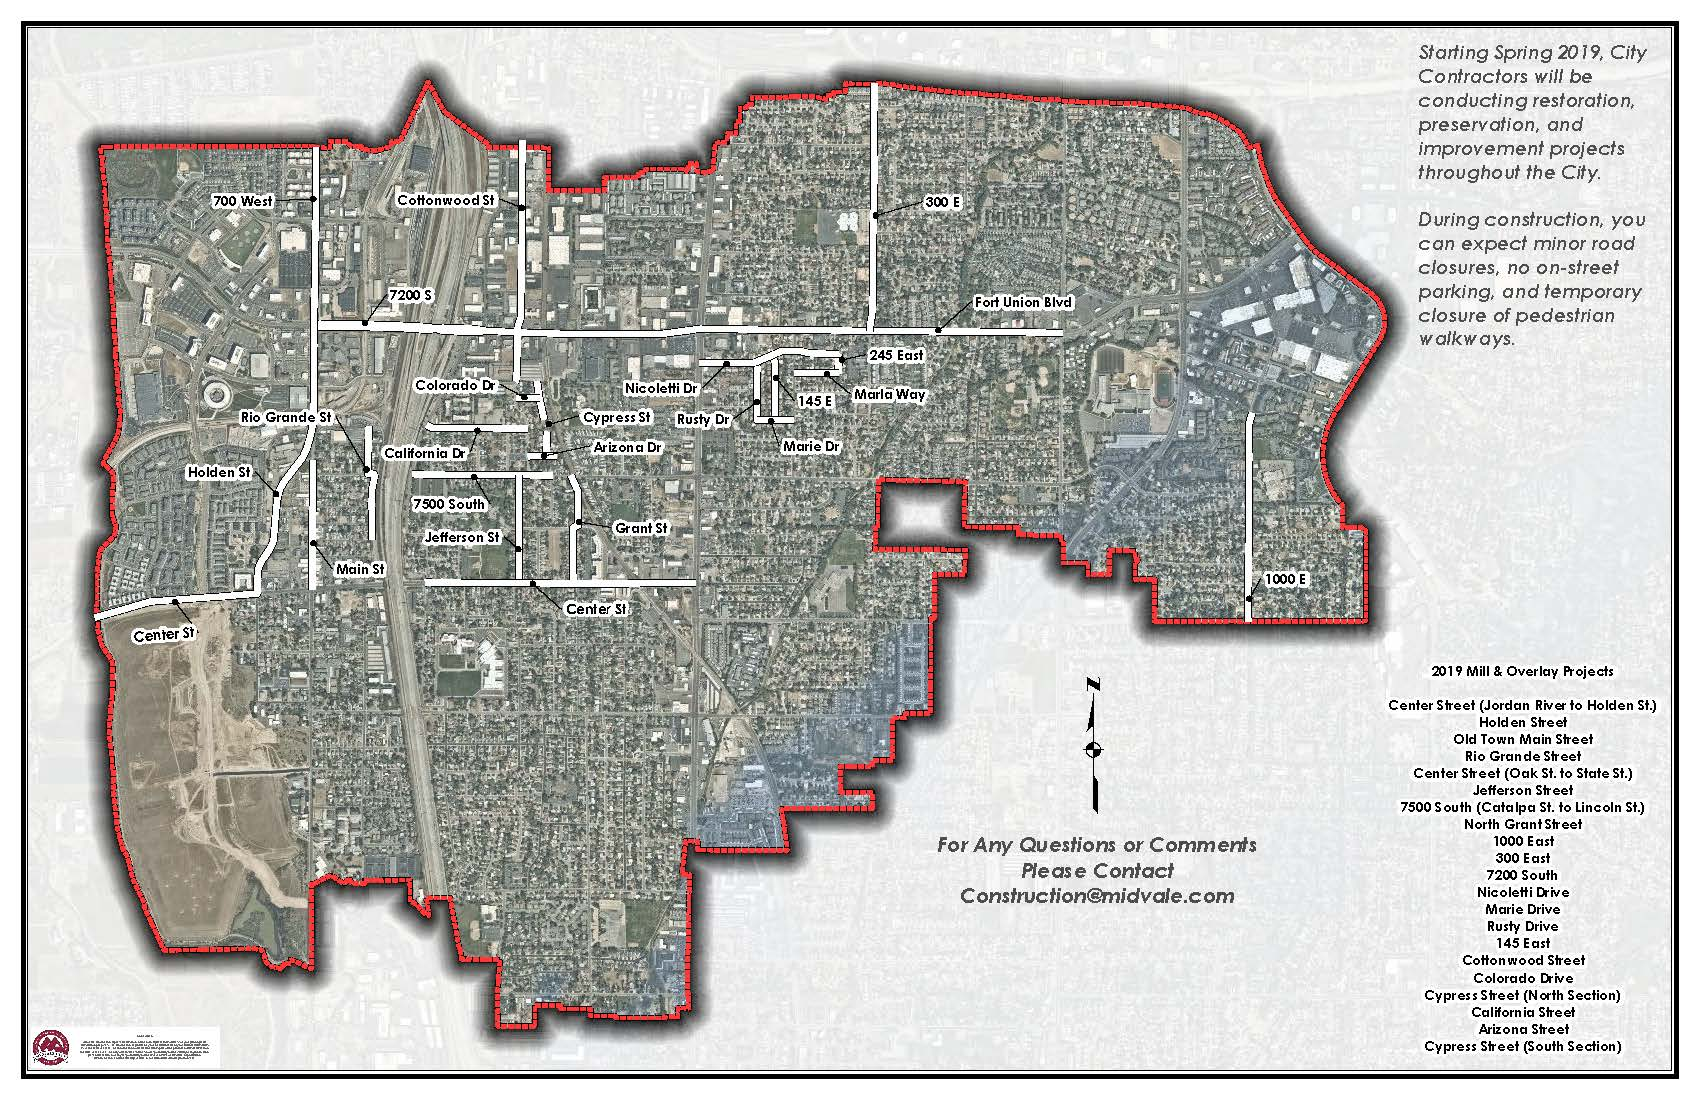 Map of Midvale City listing 2019 Mill & Overlay Projects